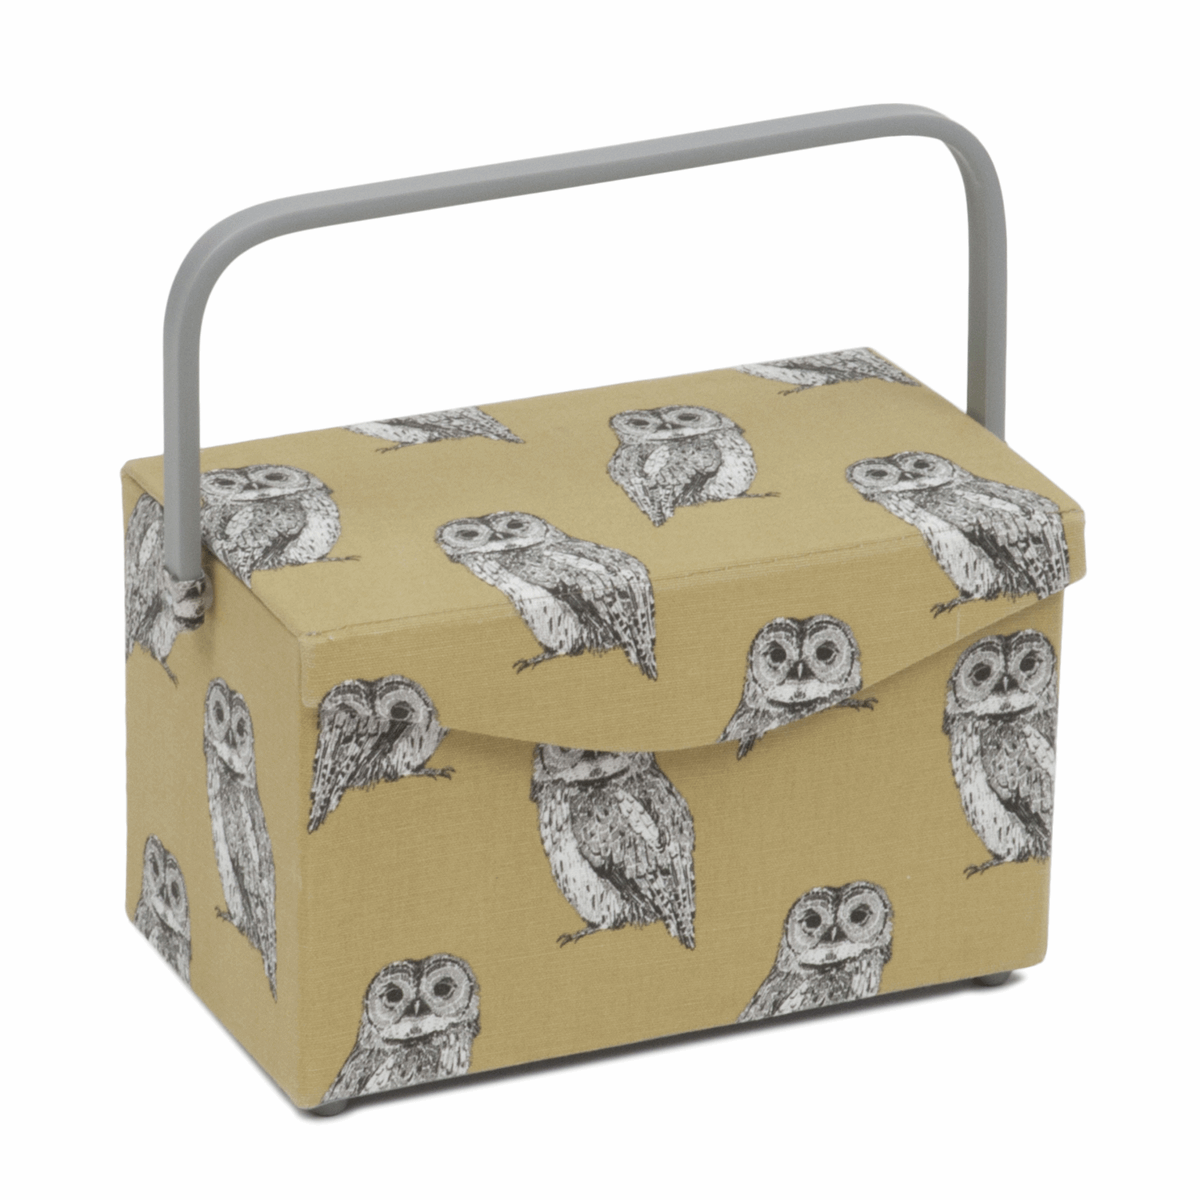 Owlet Sewing Box with Fold Over Lid